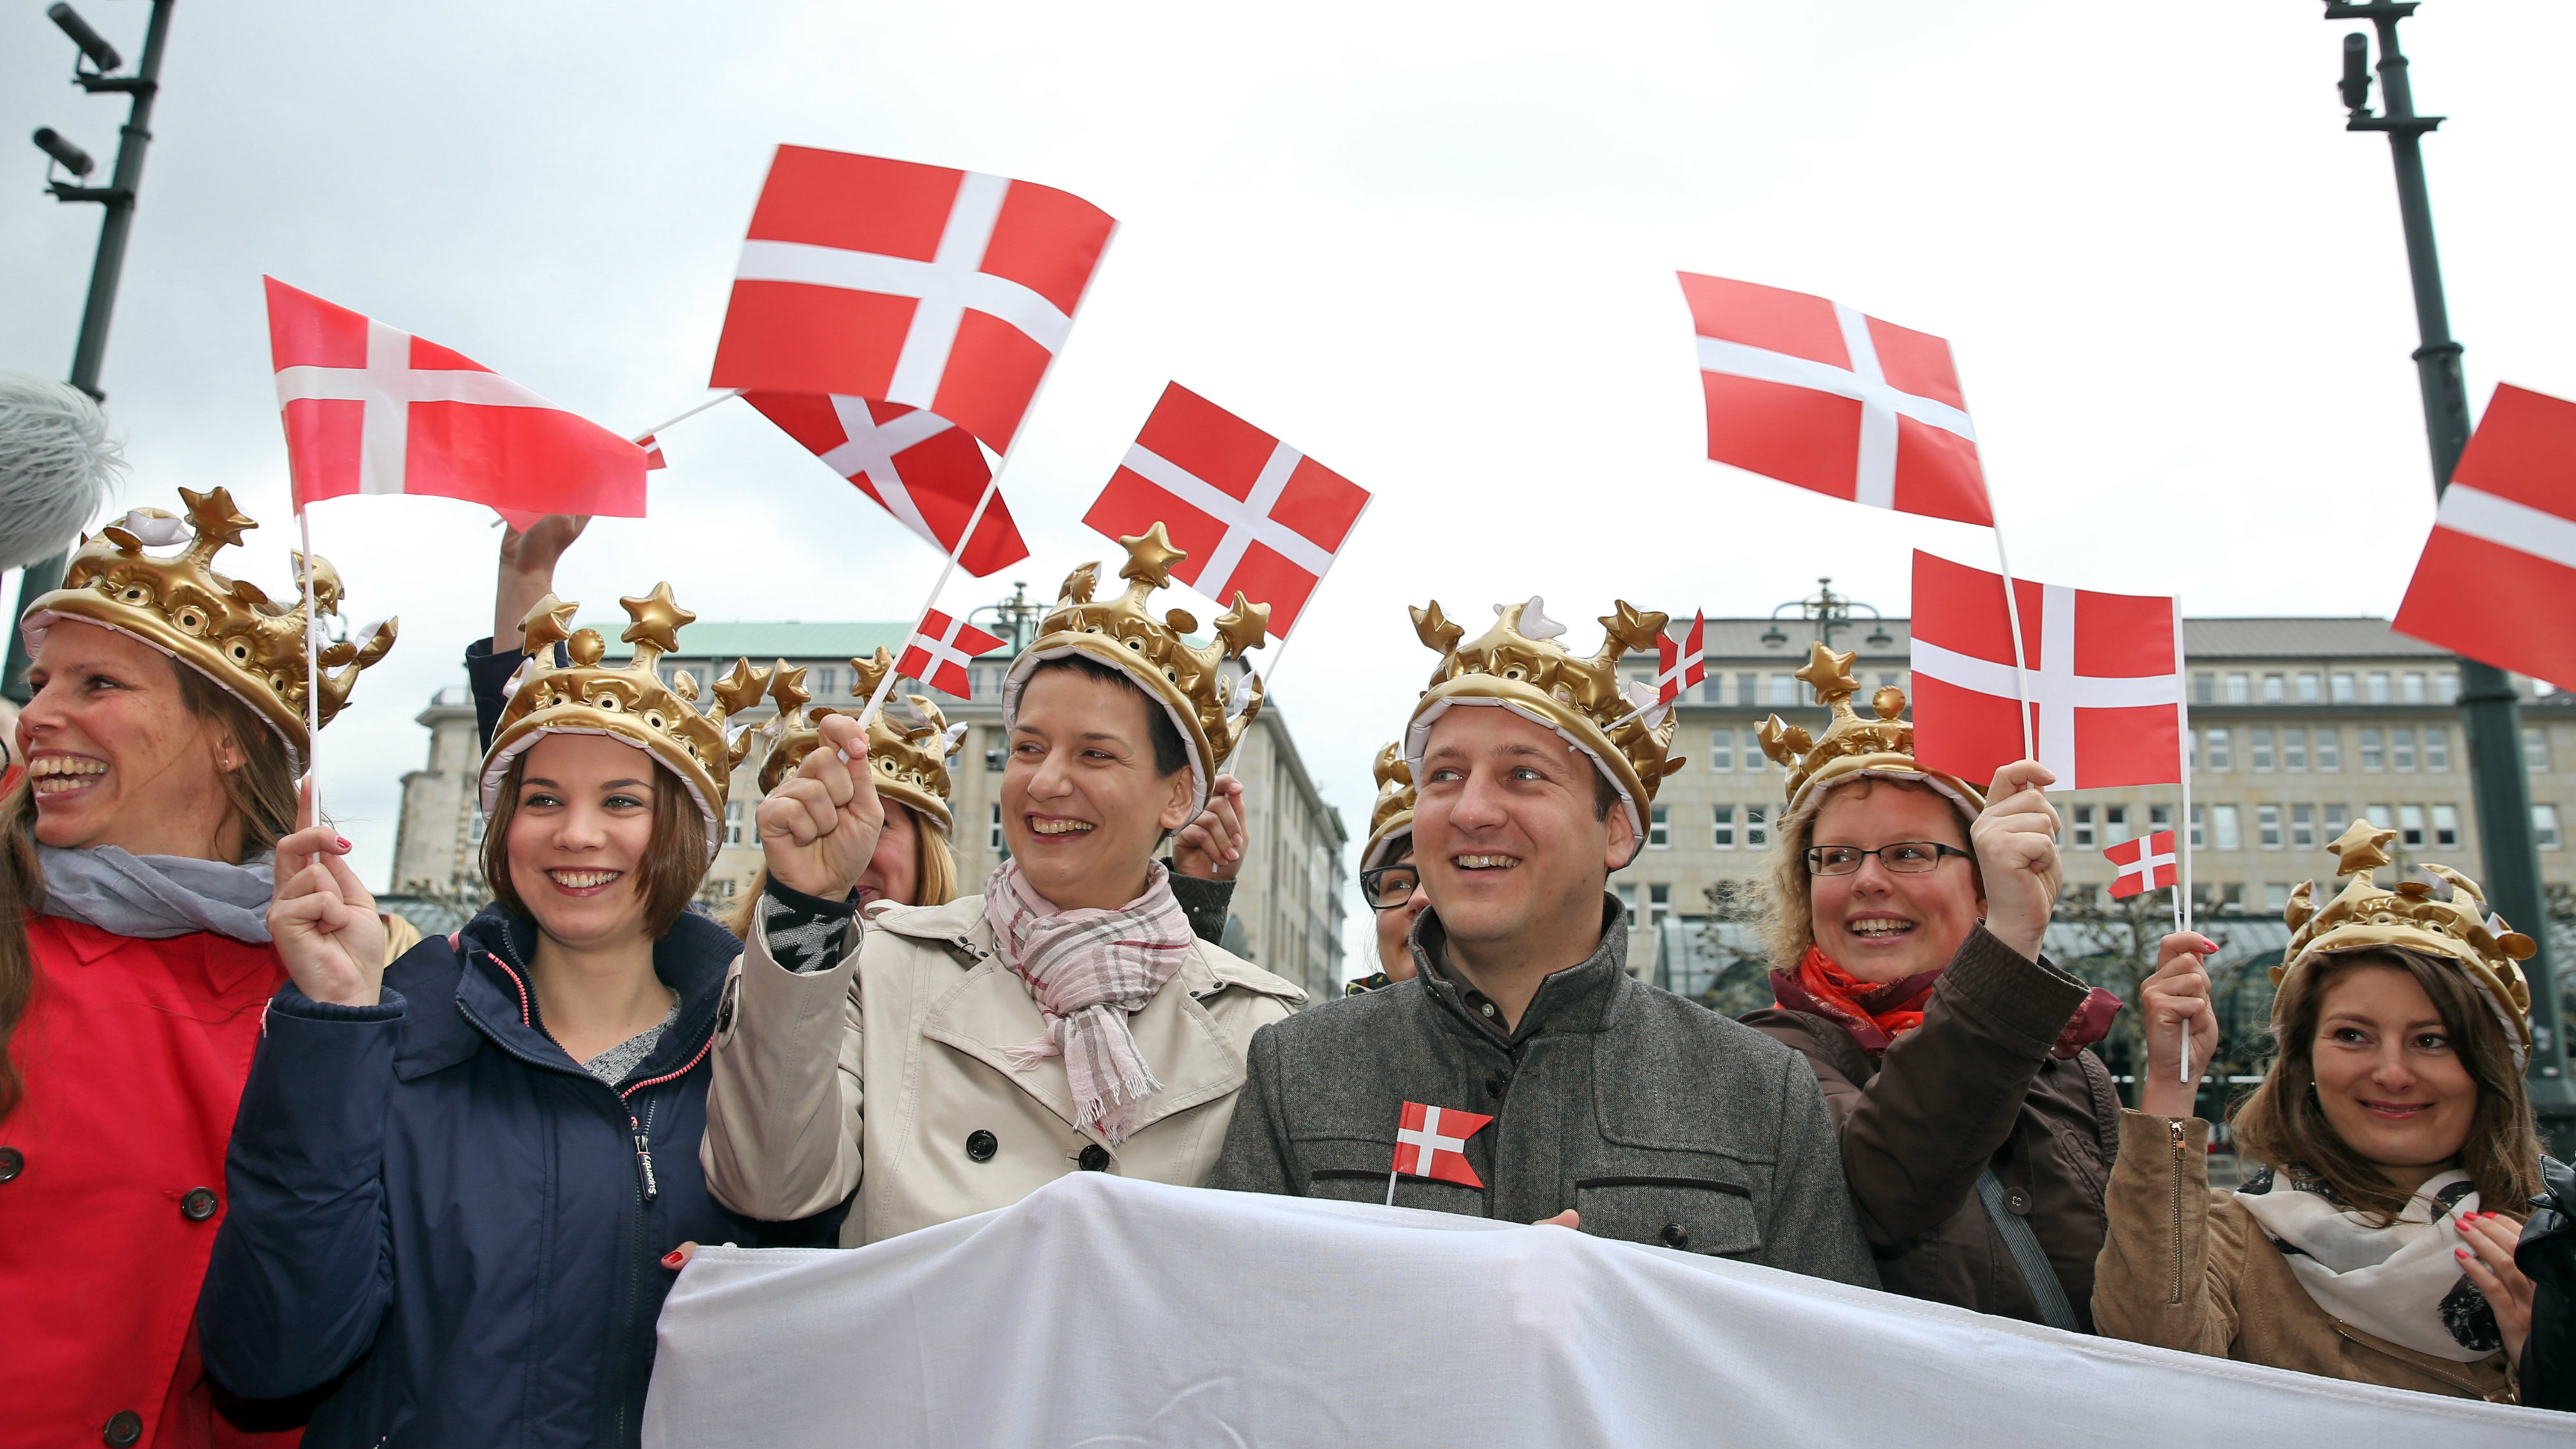 Fans of the Danish royal family carry Danish flags as they await the arrival of Danish Crown Prince and Princess